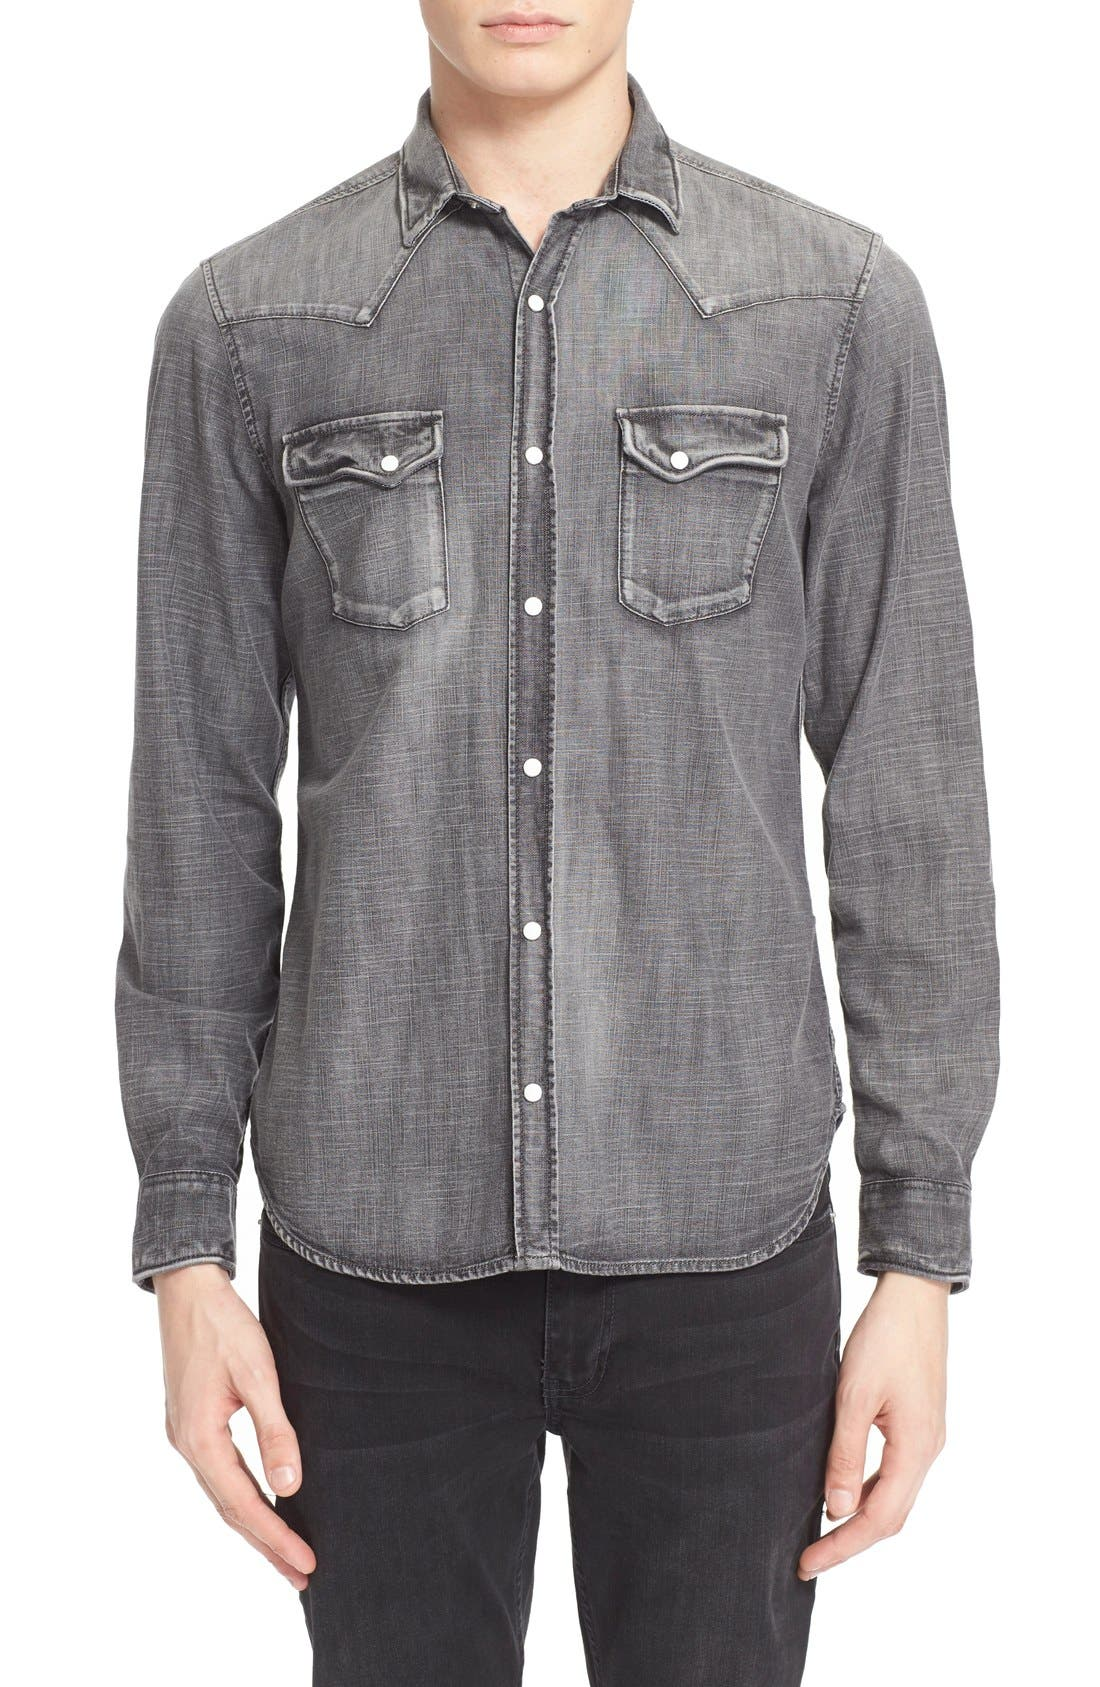 Alternate Image 1 Selected - The Kooples Trim Fit Denim Western Shirt